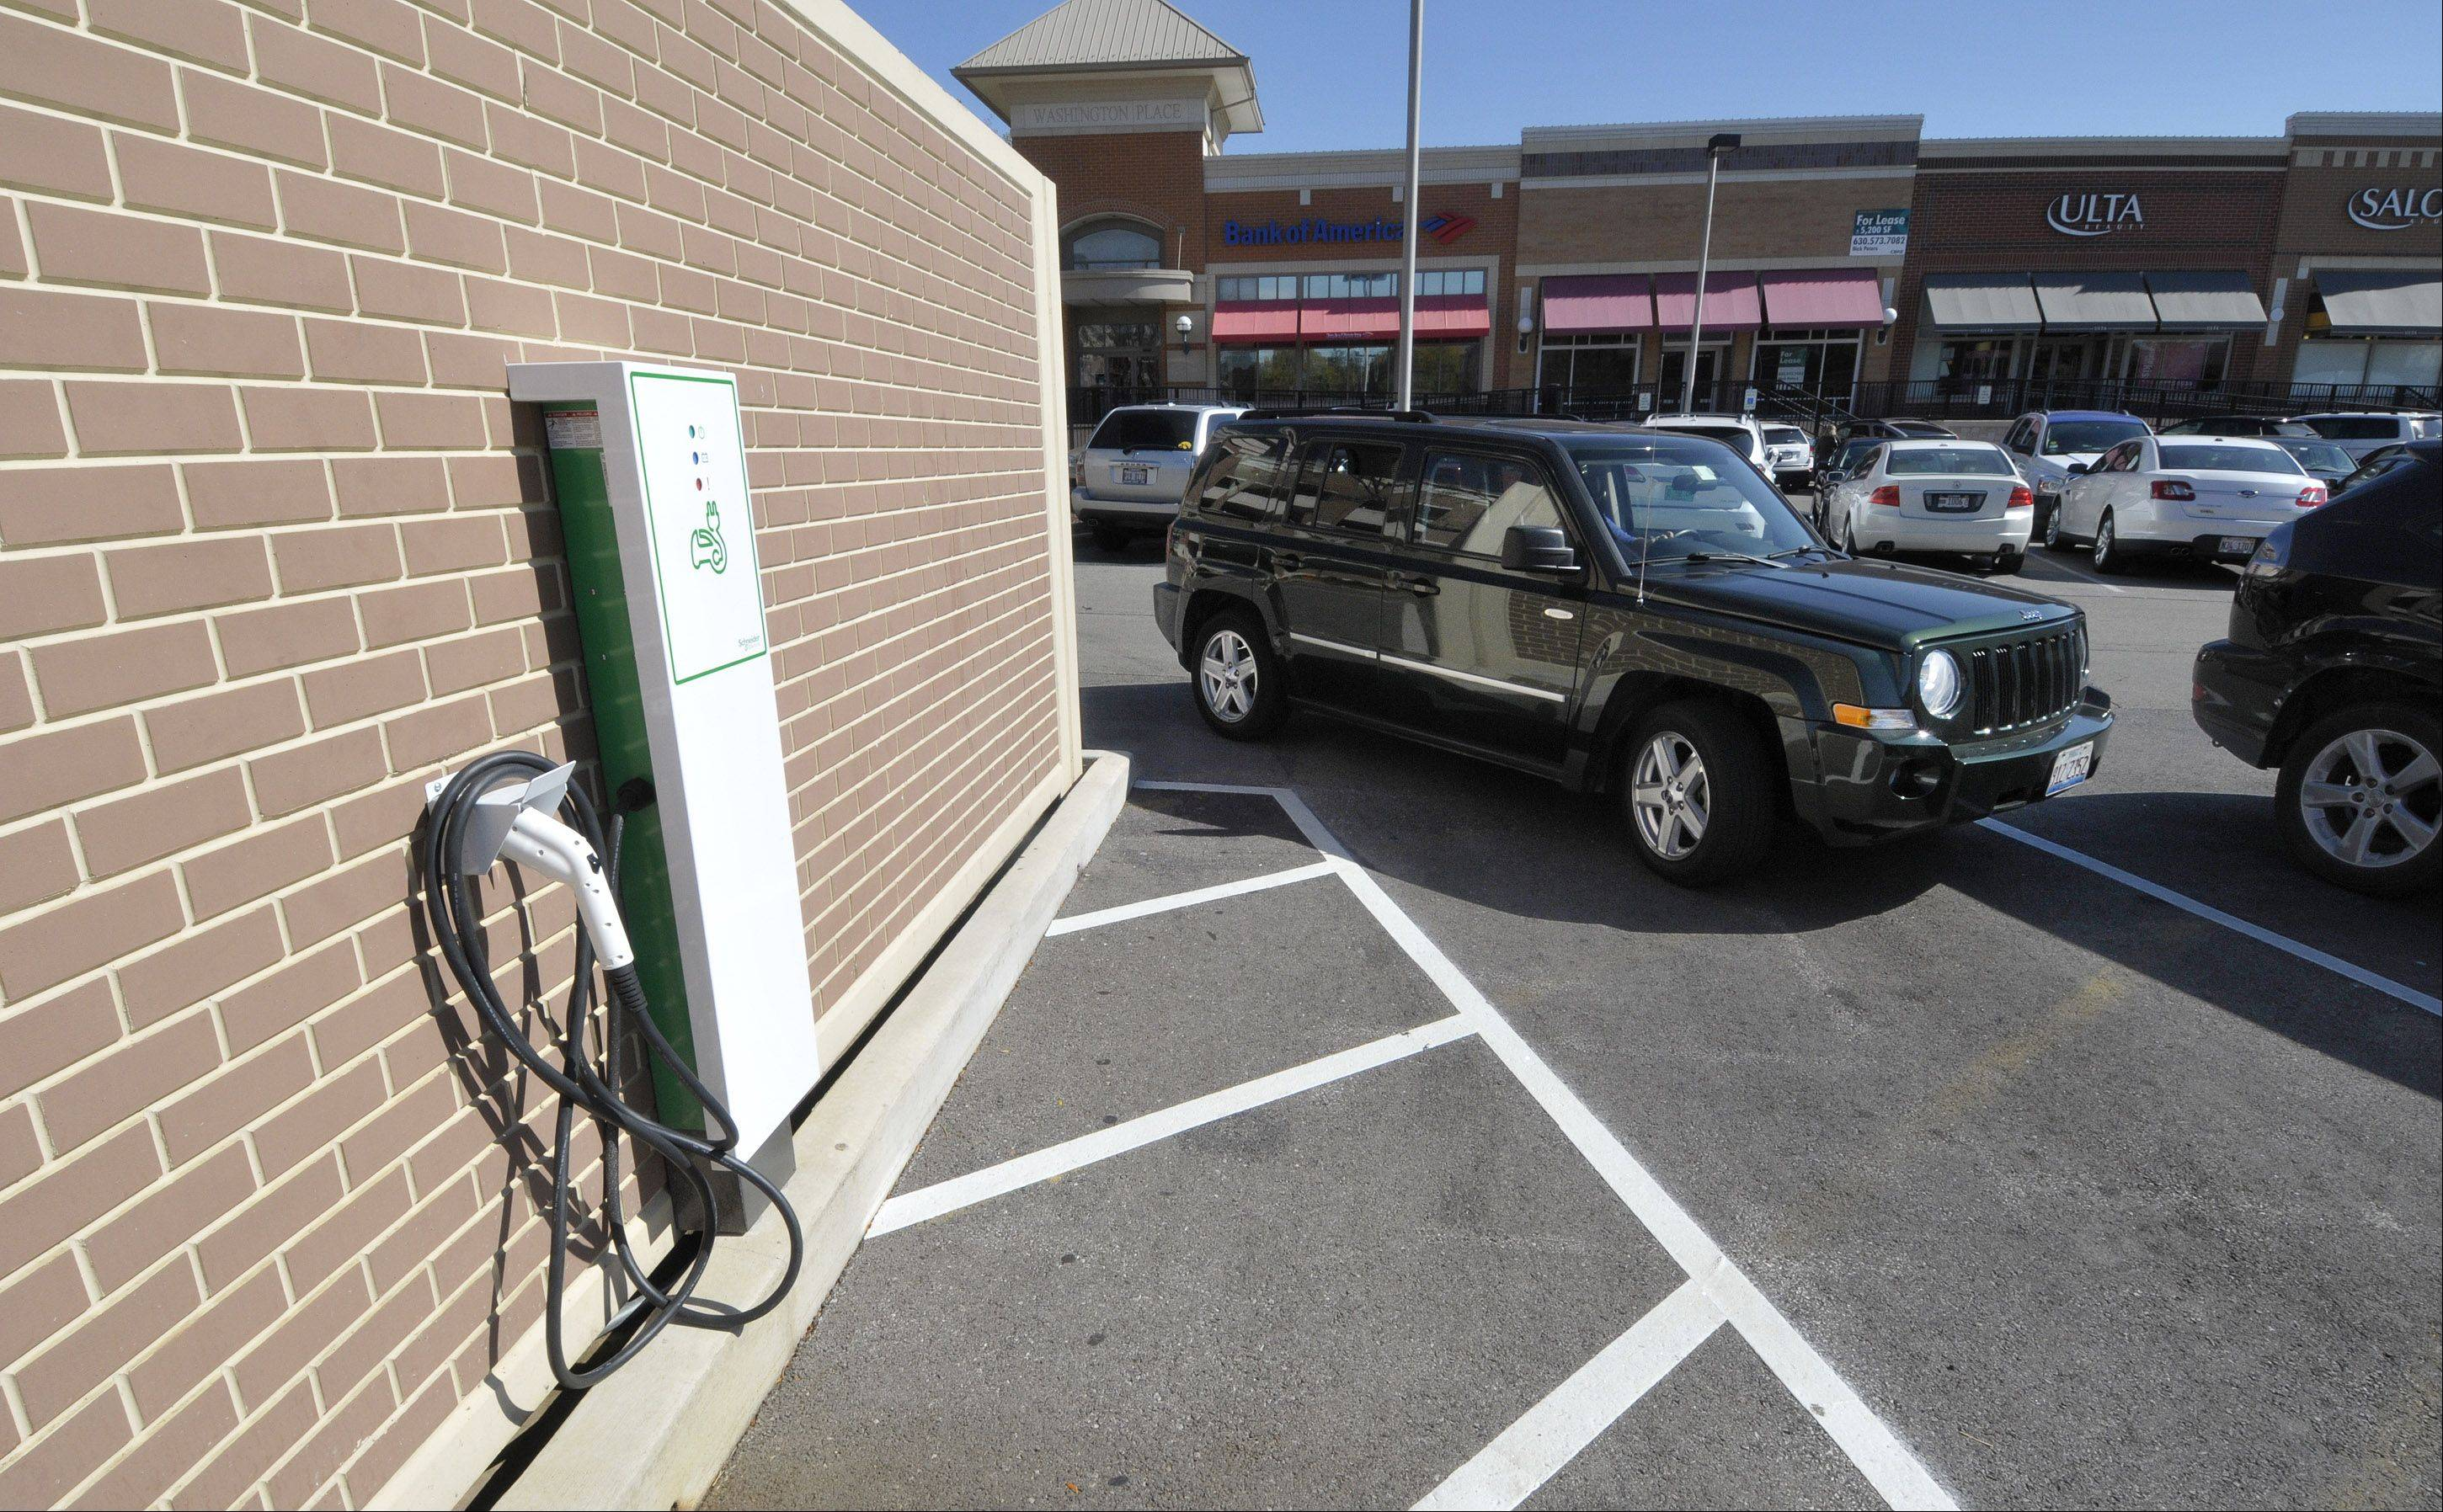 Naperville's downtown electric vehicle charging stations are one of the elements supporters point to as they urge officials to join the Cool Cities program.